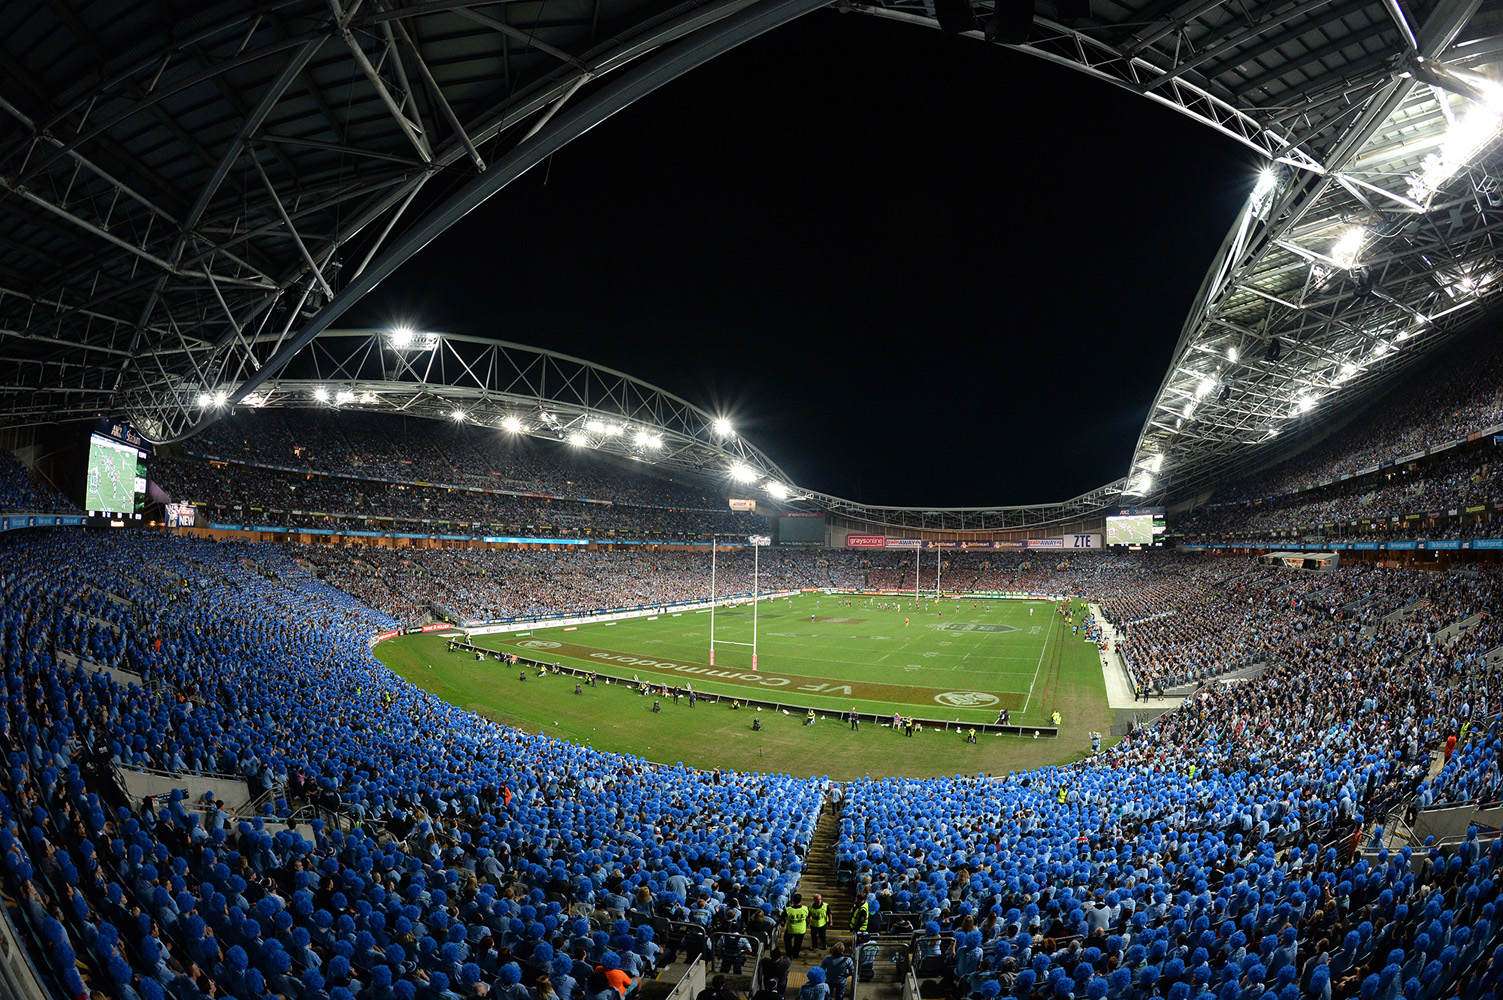 State of Origin game III at ANZ Stadium, Sydney on Wednesday, July 17, 2013. (Pic:Dan Himbrechts)